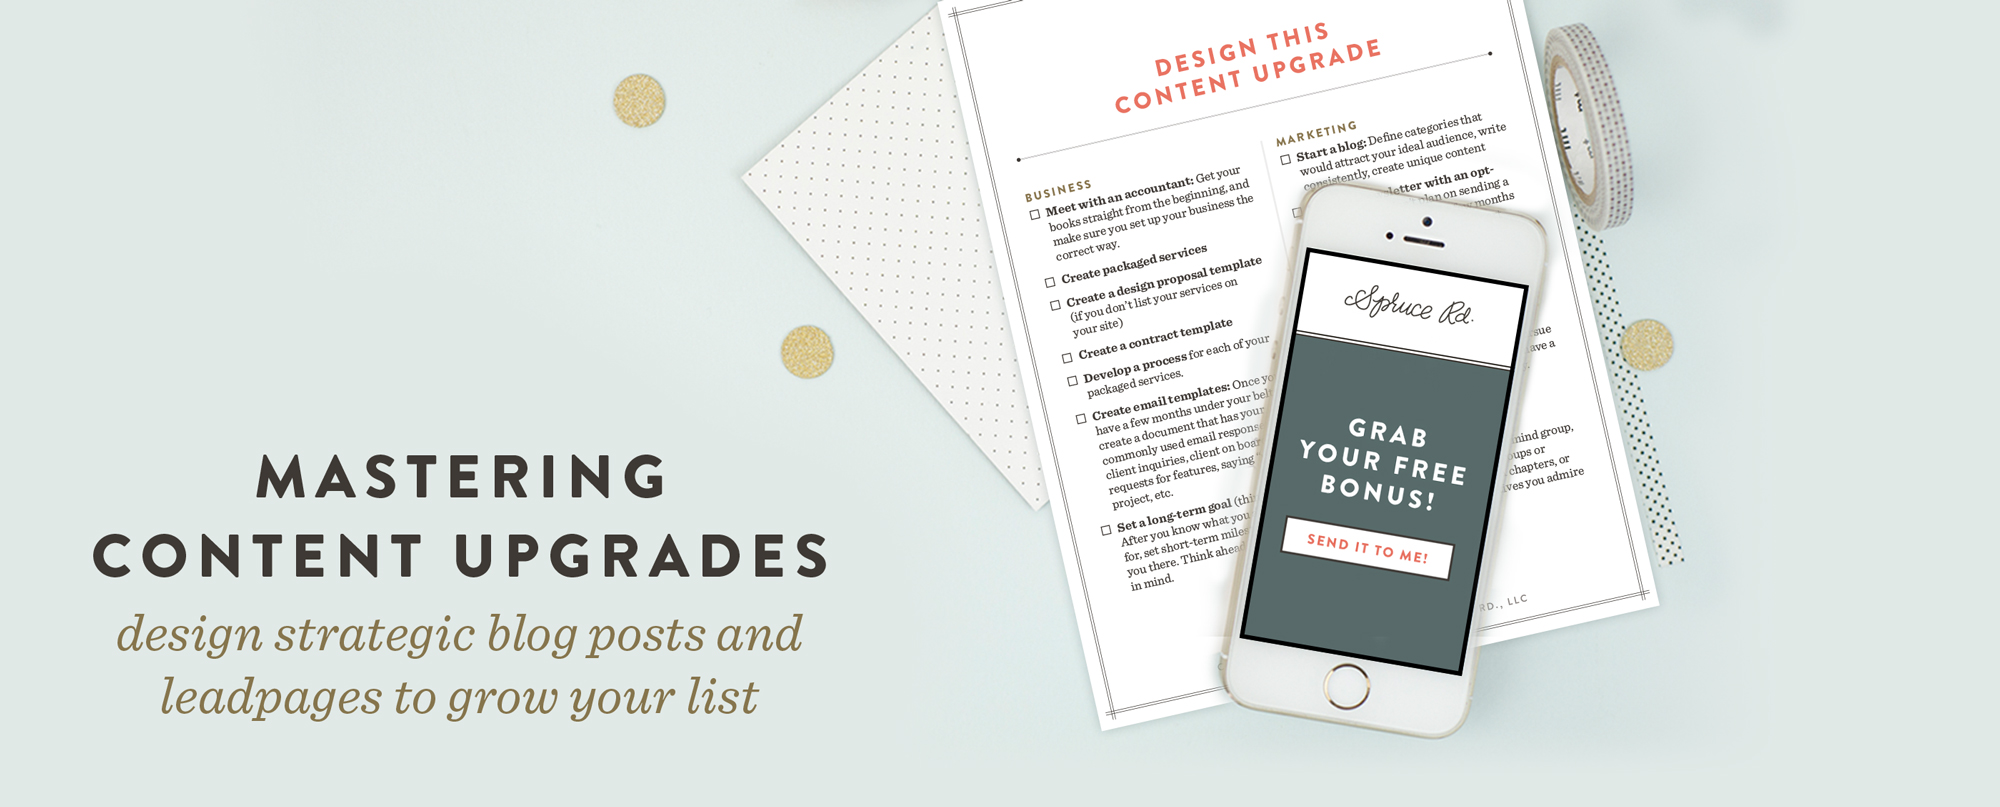 Mastering Content Upgrades // Are you ready to start growing your email list, but are hung up on the process? I have grown my list from 150 to 1,072 in about 60 days, primarily through content upgrades. I am sharing my secrets on how to grow your list (including freebies, LeadPages, Mailchimp, etc), as well as a FREE download of my top 10 favorite content upgrade ideas!